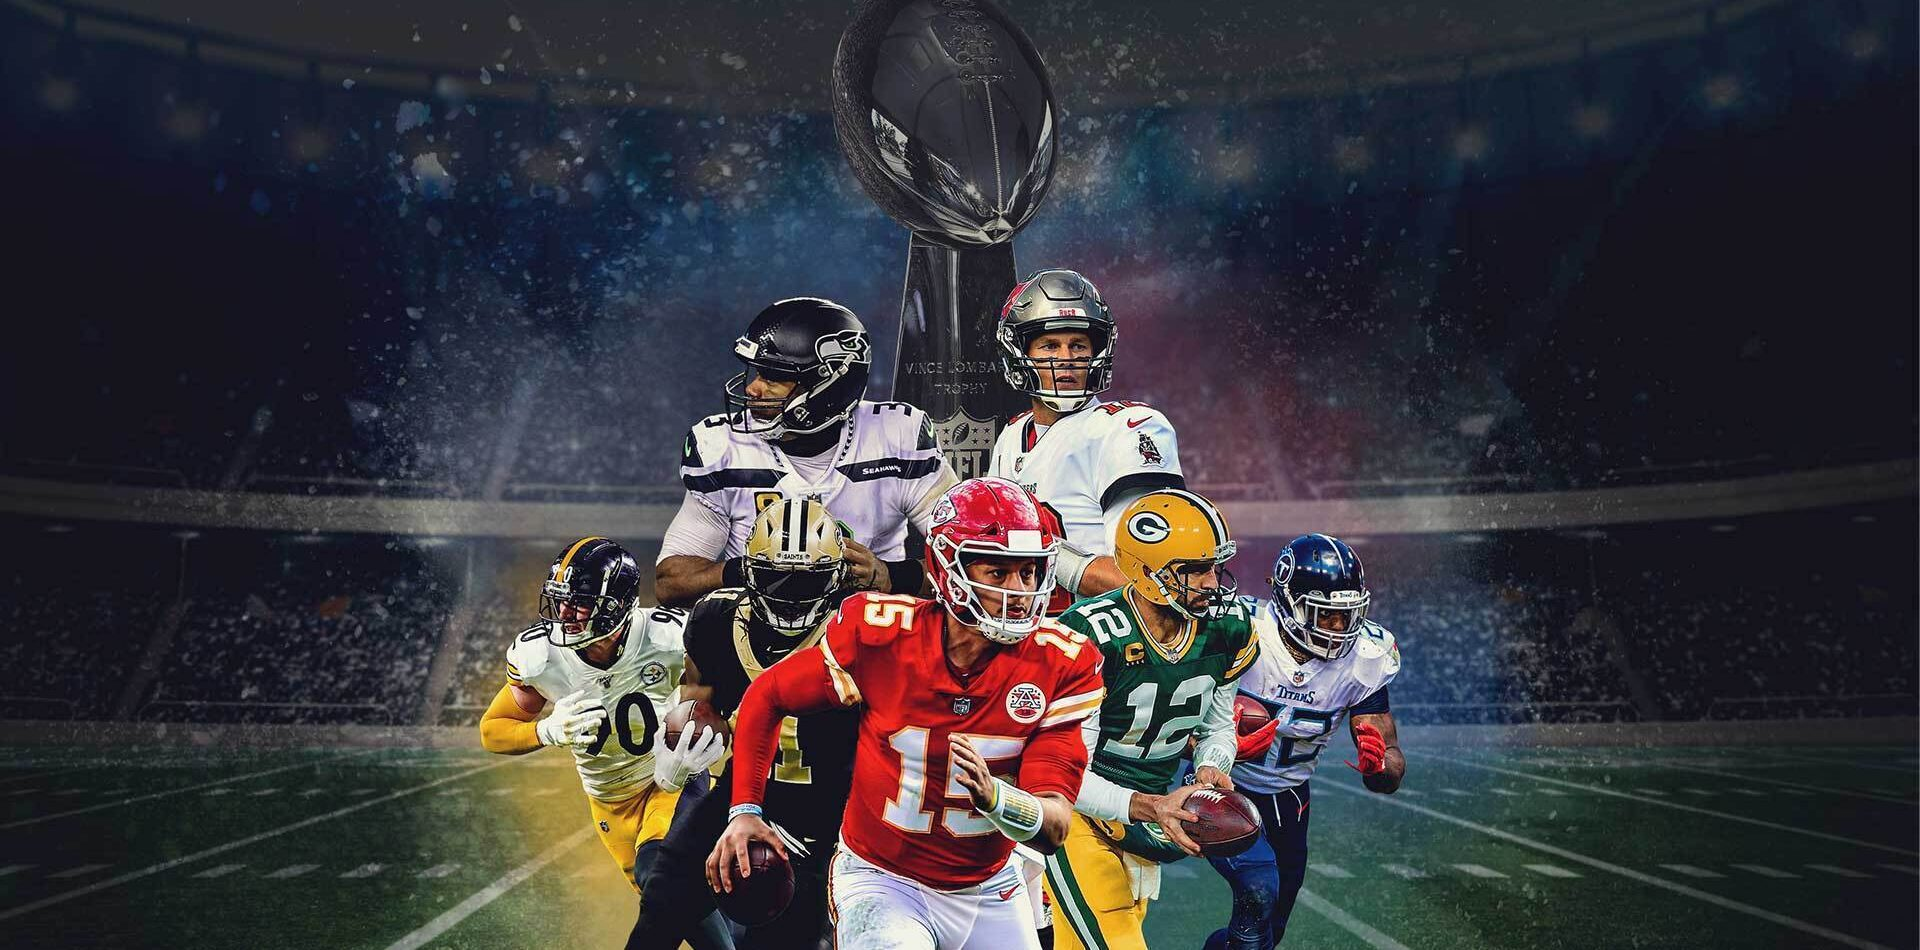 Super Bowl themed image with 7 NFL players